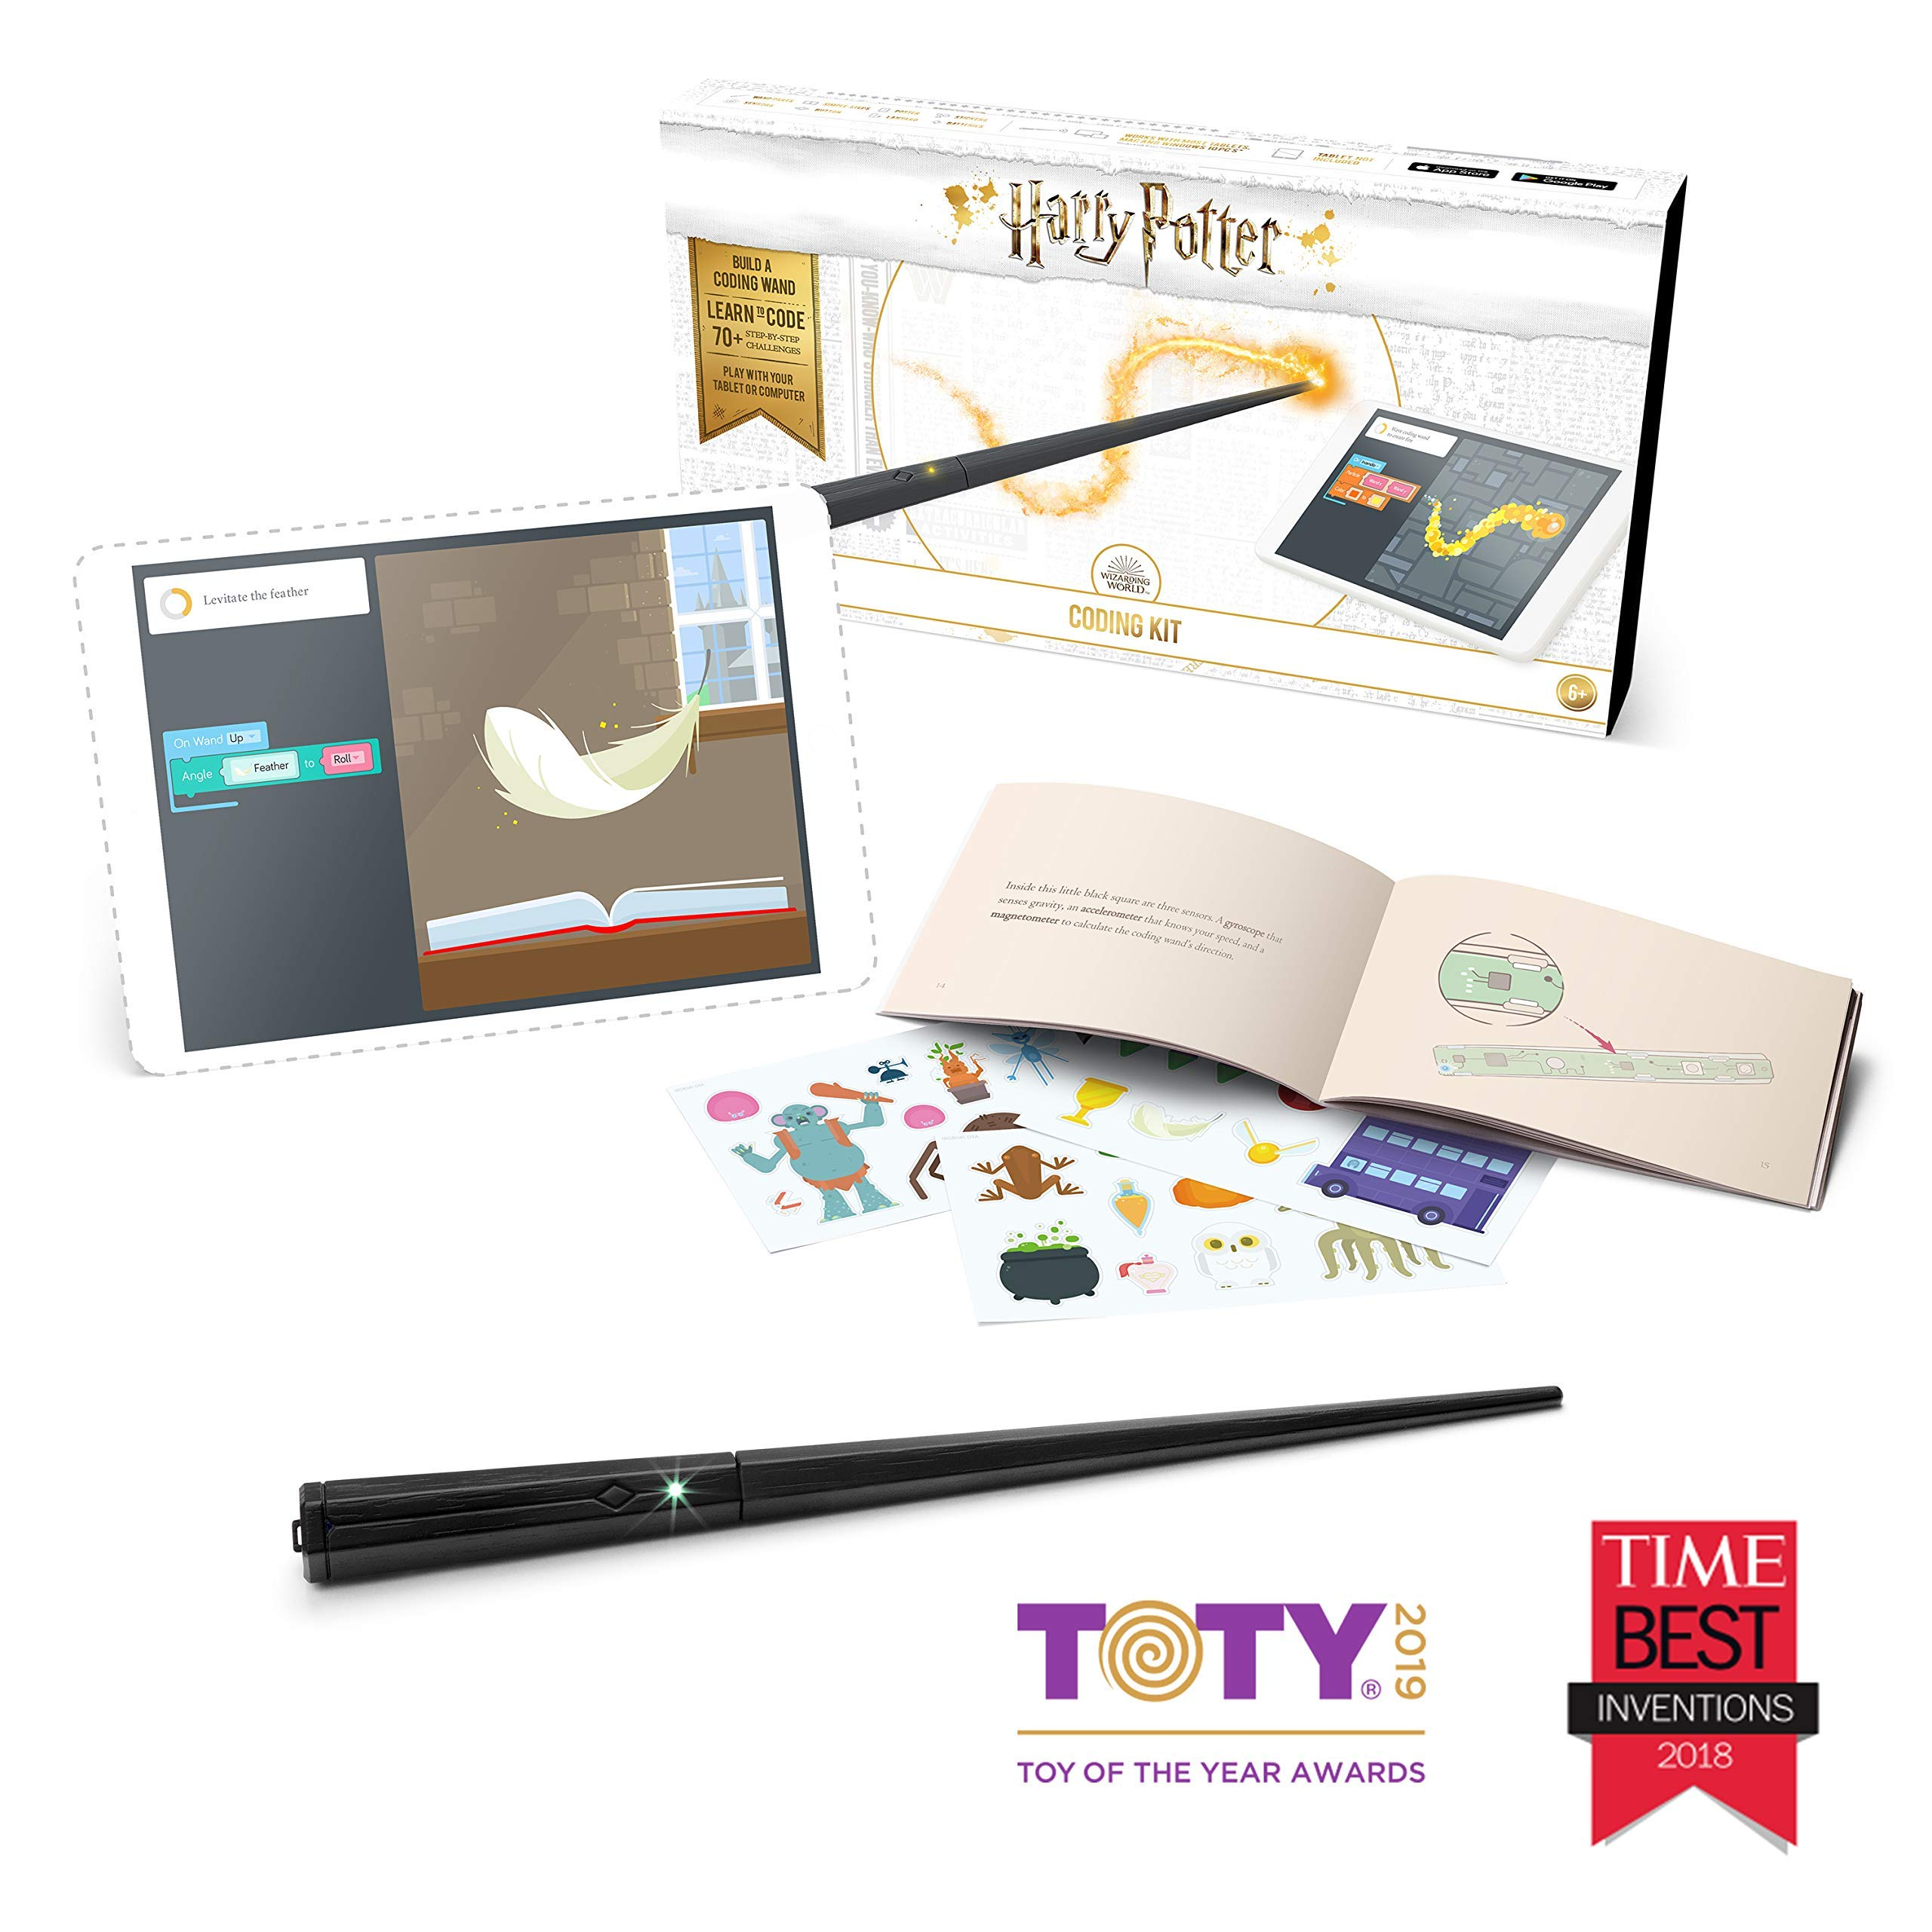 Kano Harry Potter Coding Kit - Build a Wand. Learn To Code. Make Magic. (Renewed) by Kano (Image #2)